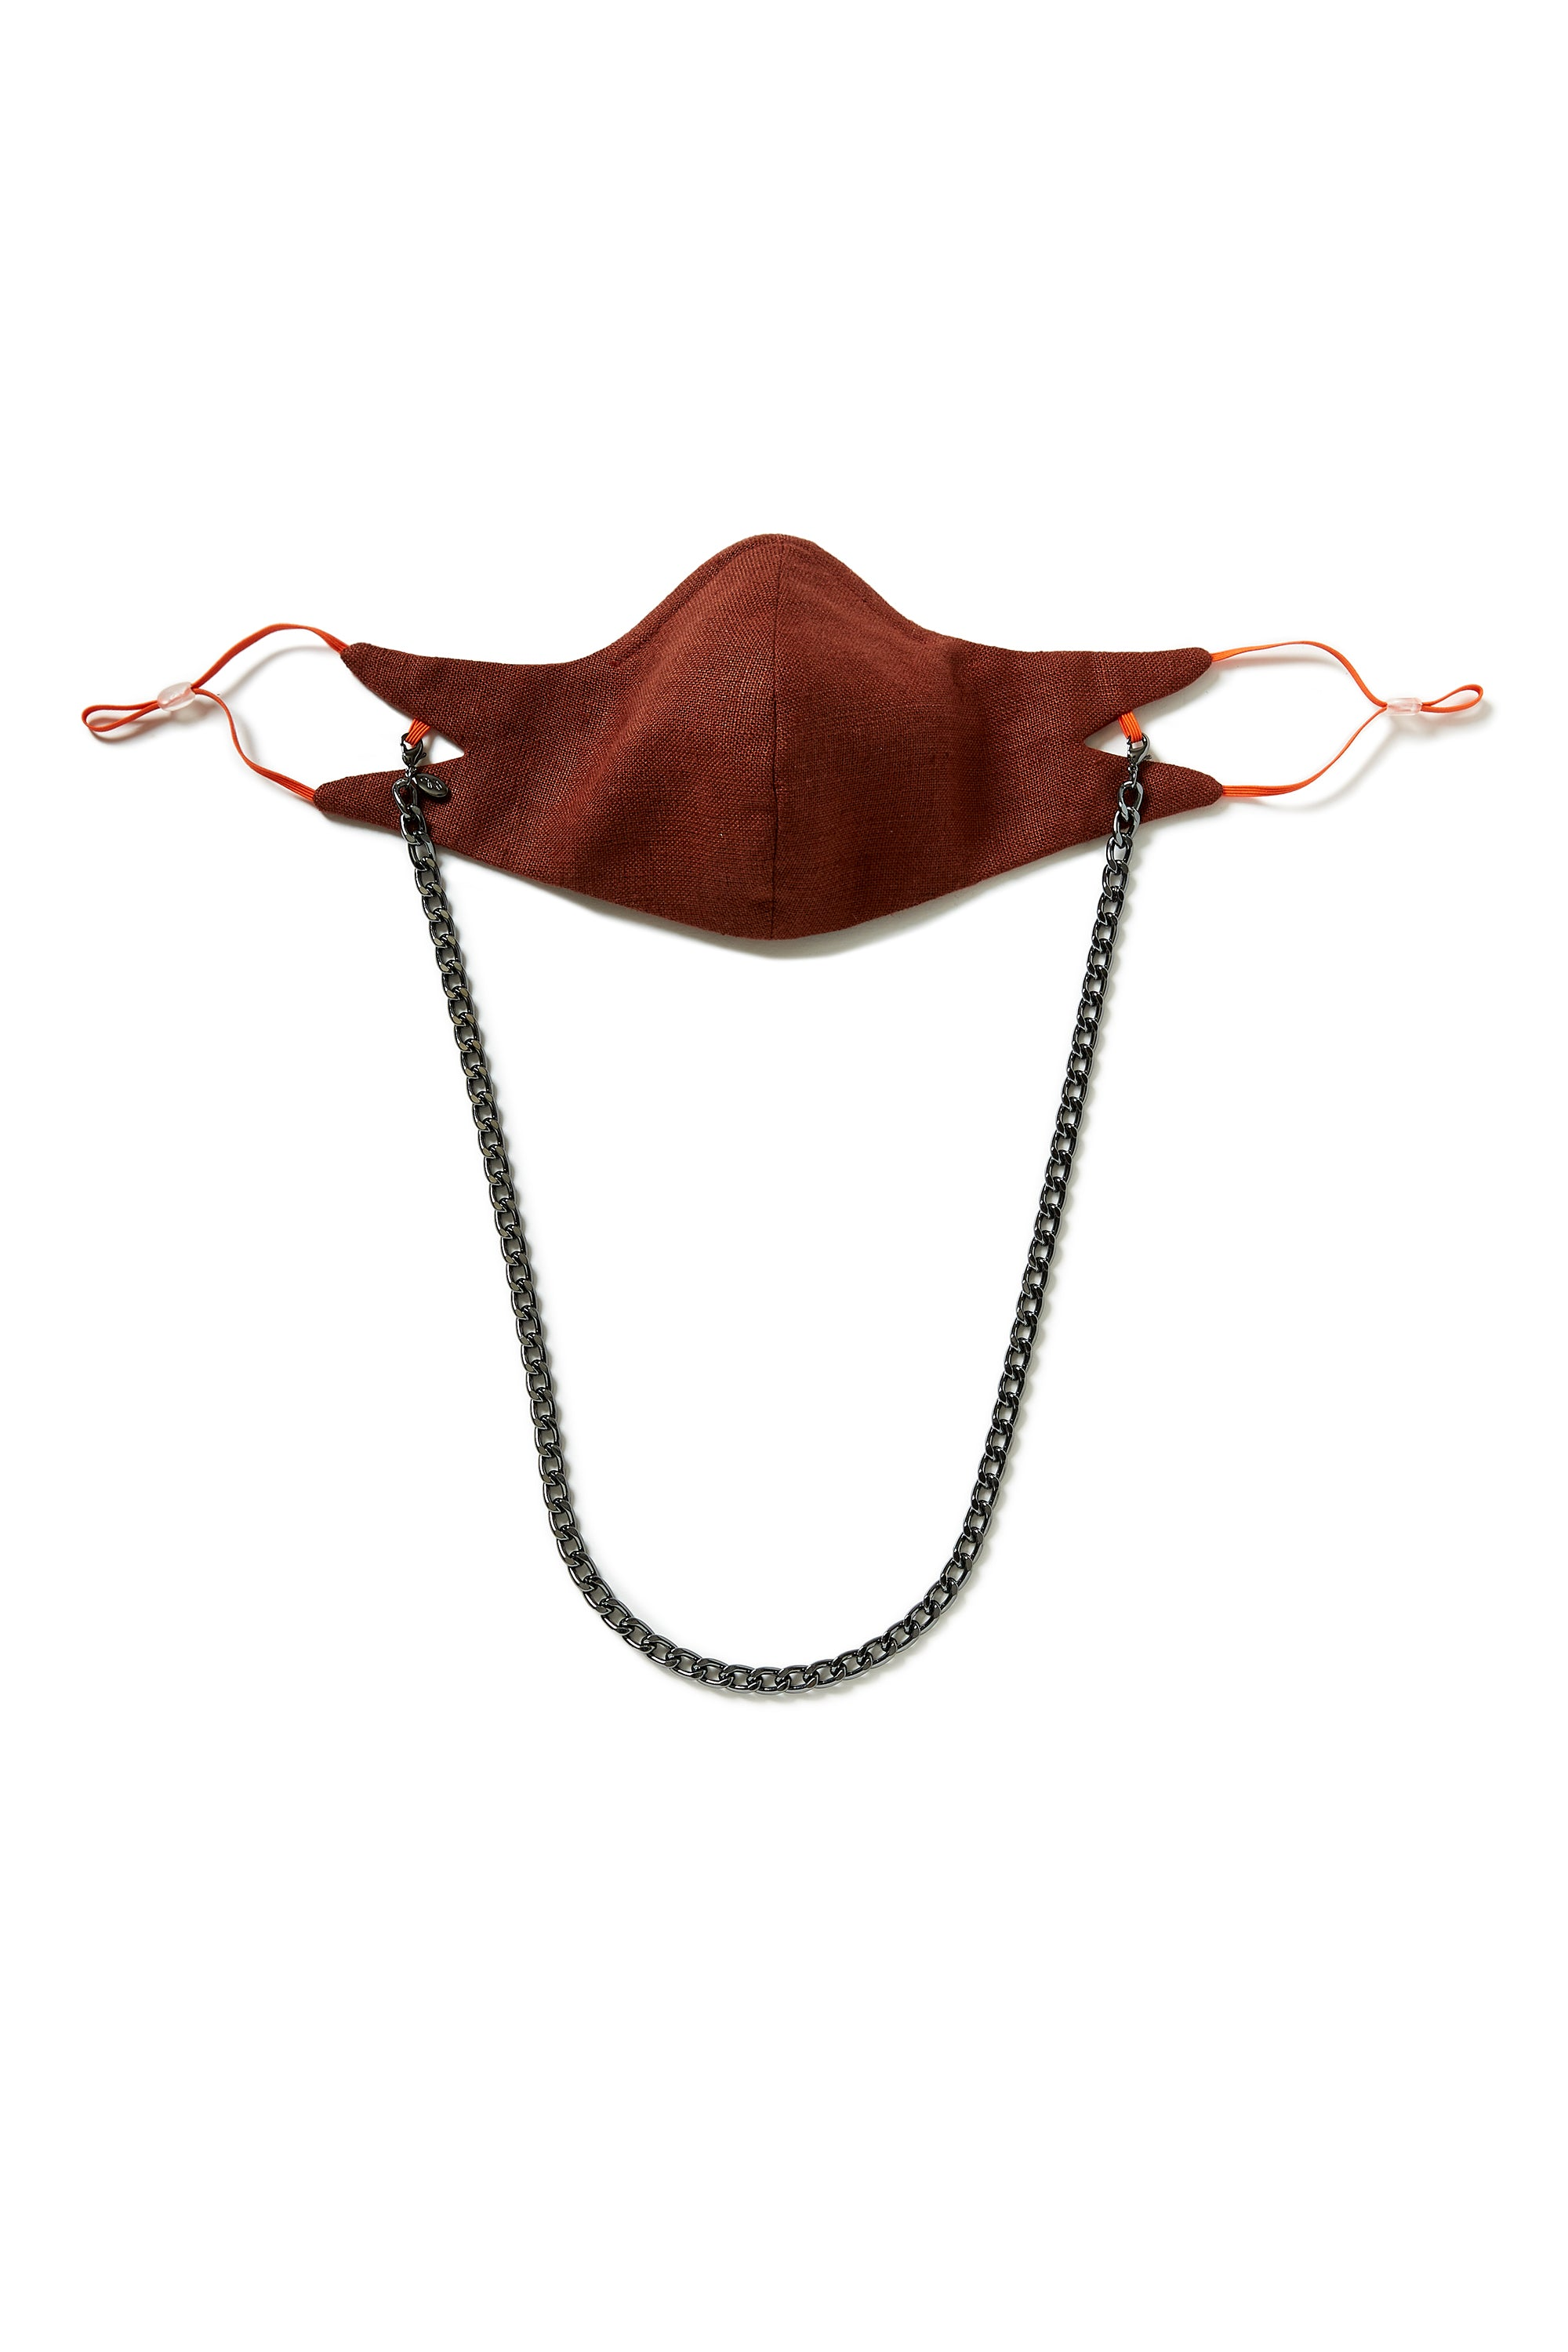 The Tina Mask in Spice With 7mm Gunmetal Chain